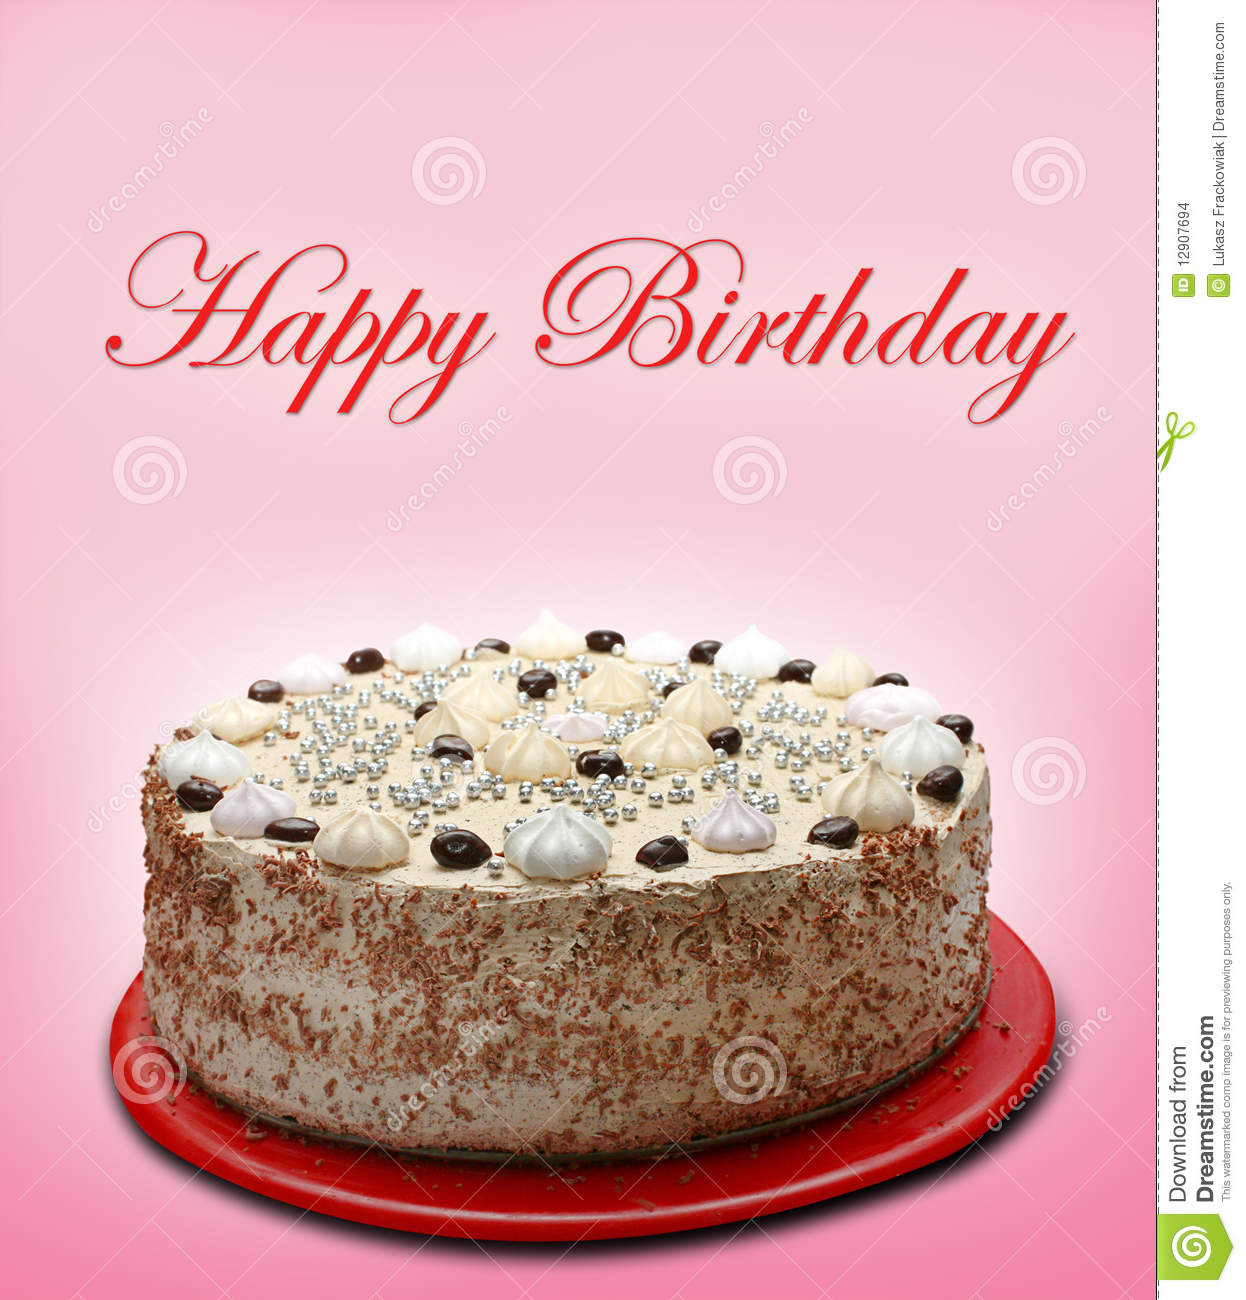 Happy Birthday Cake Stock Photo Image Of Sweet Candy 12907694